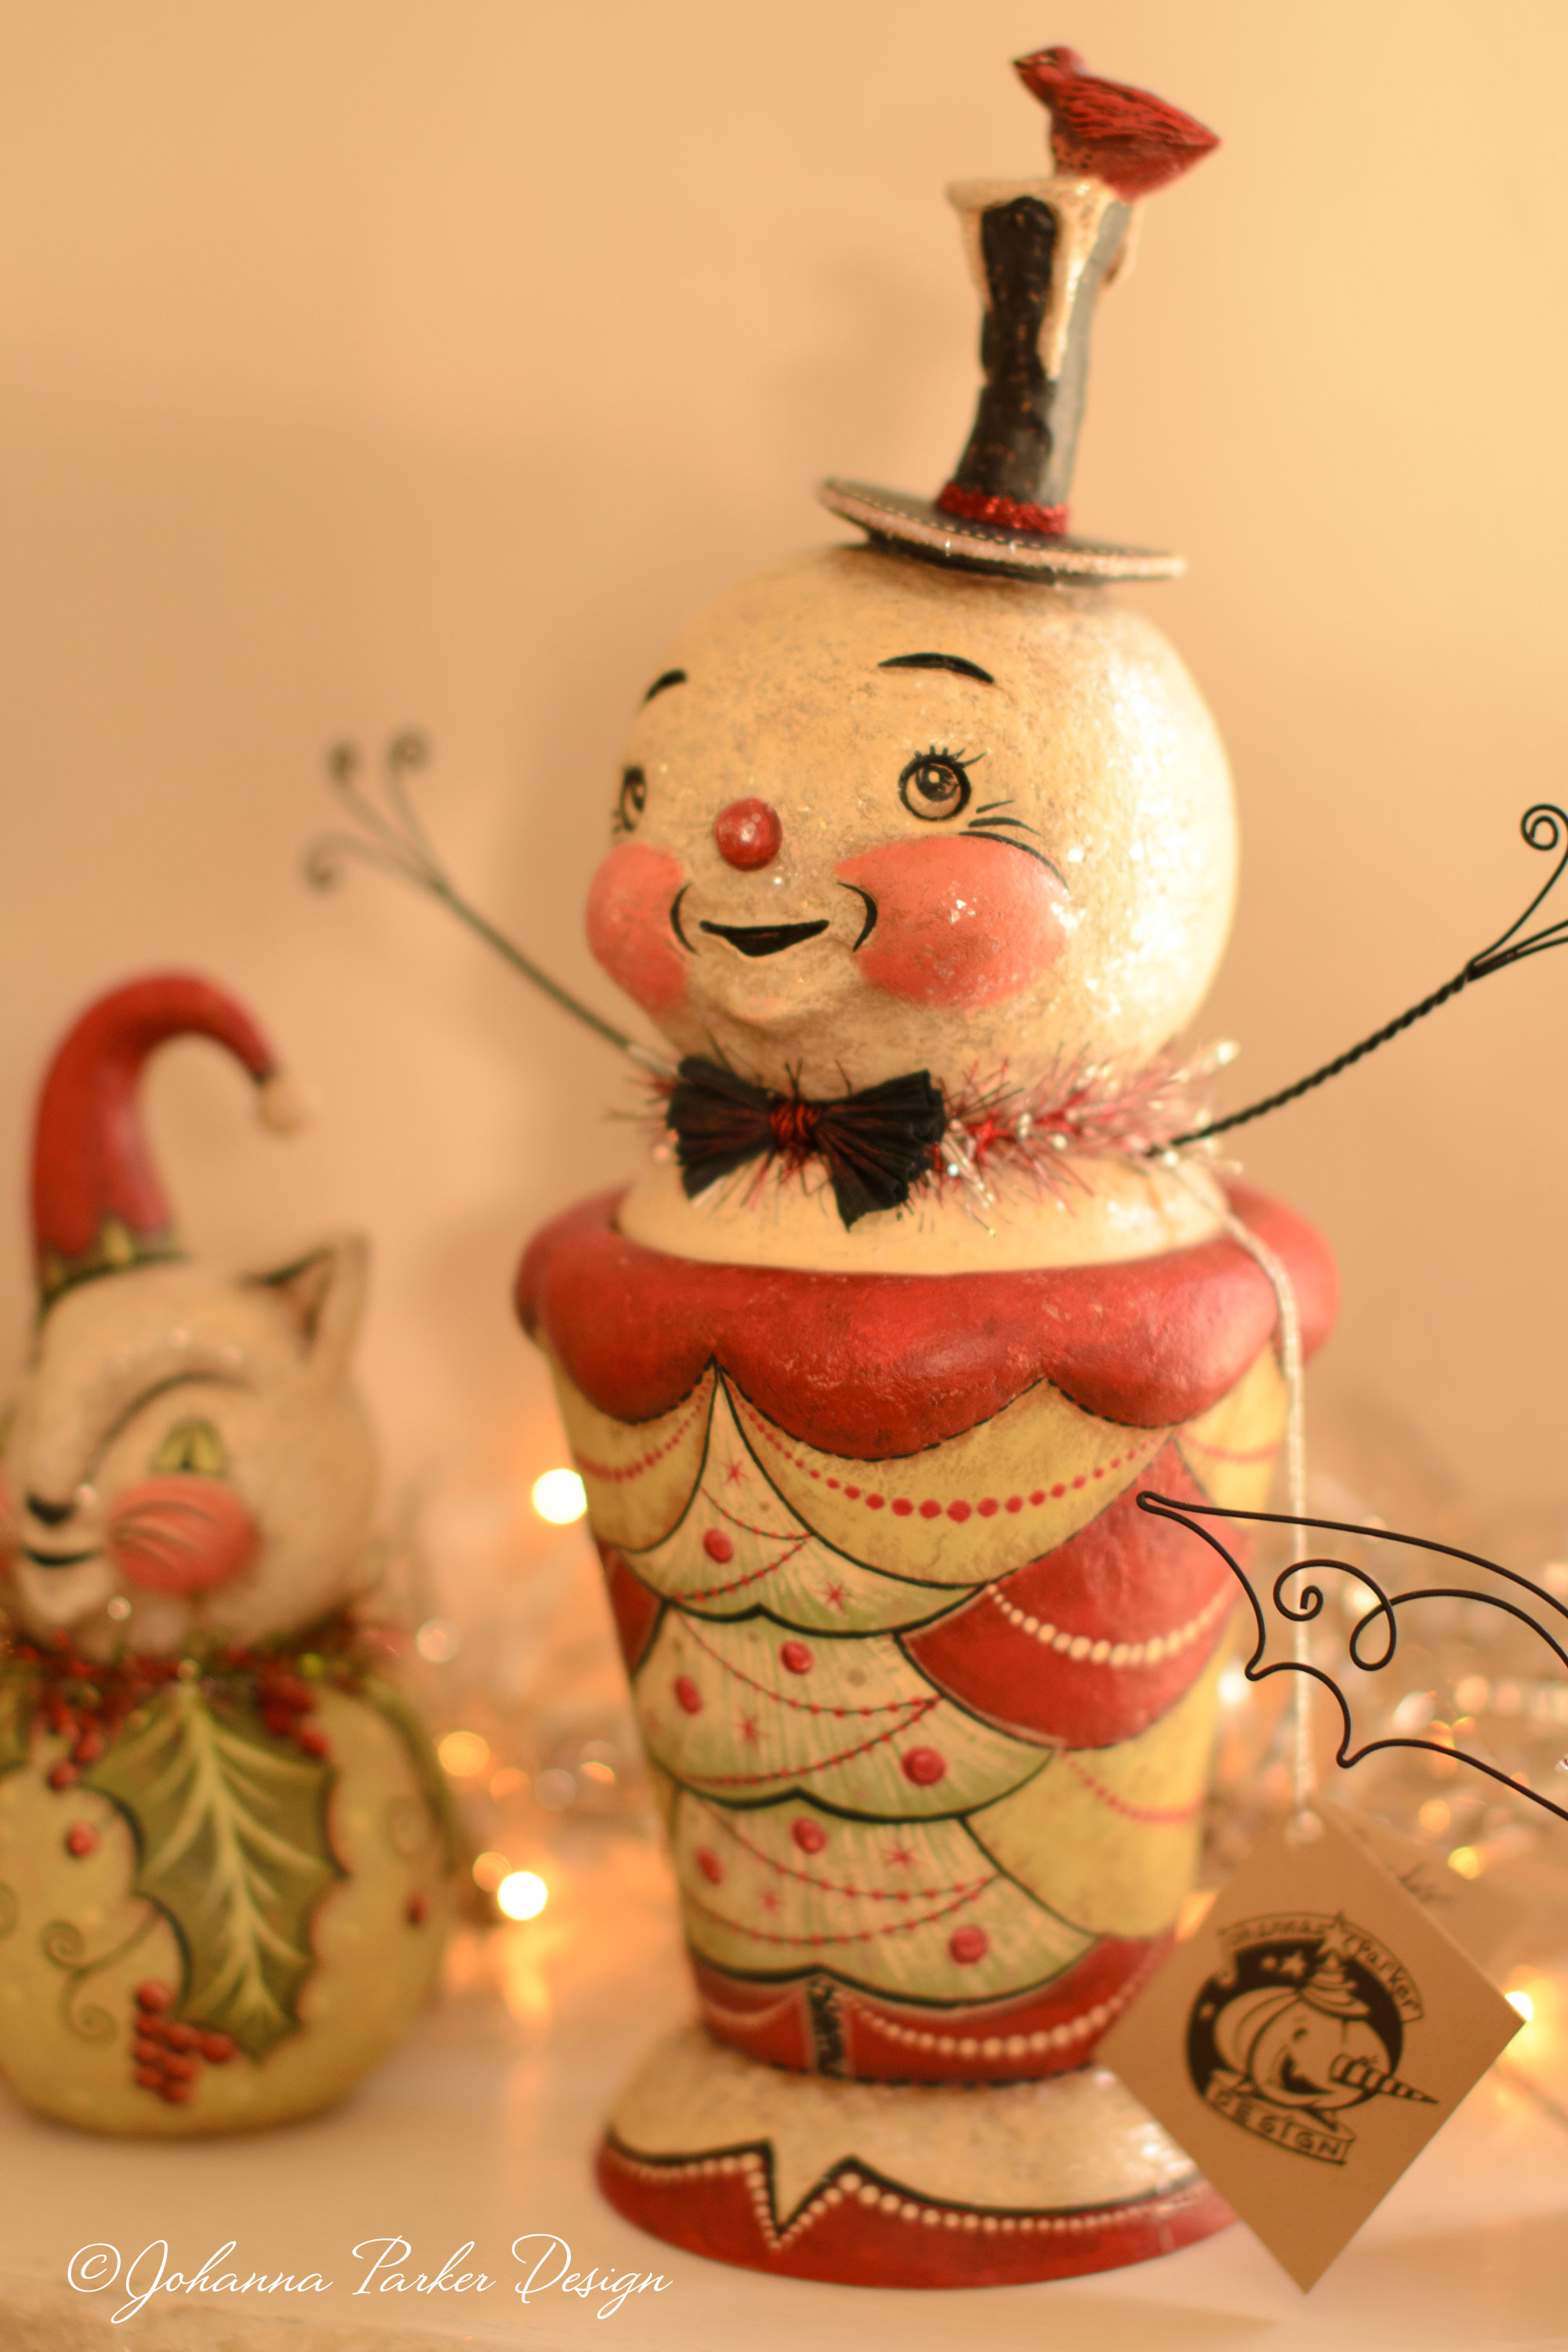 Snowman tree bird candy container